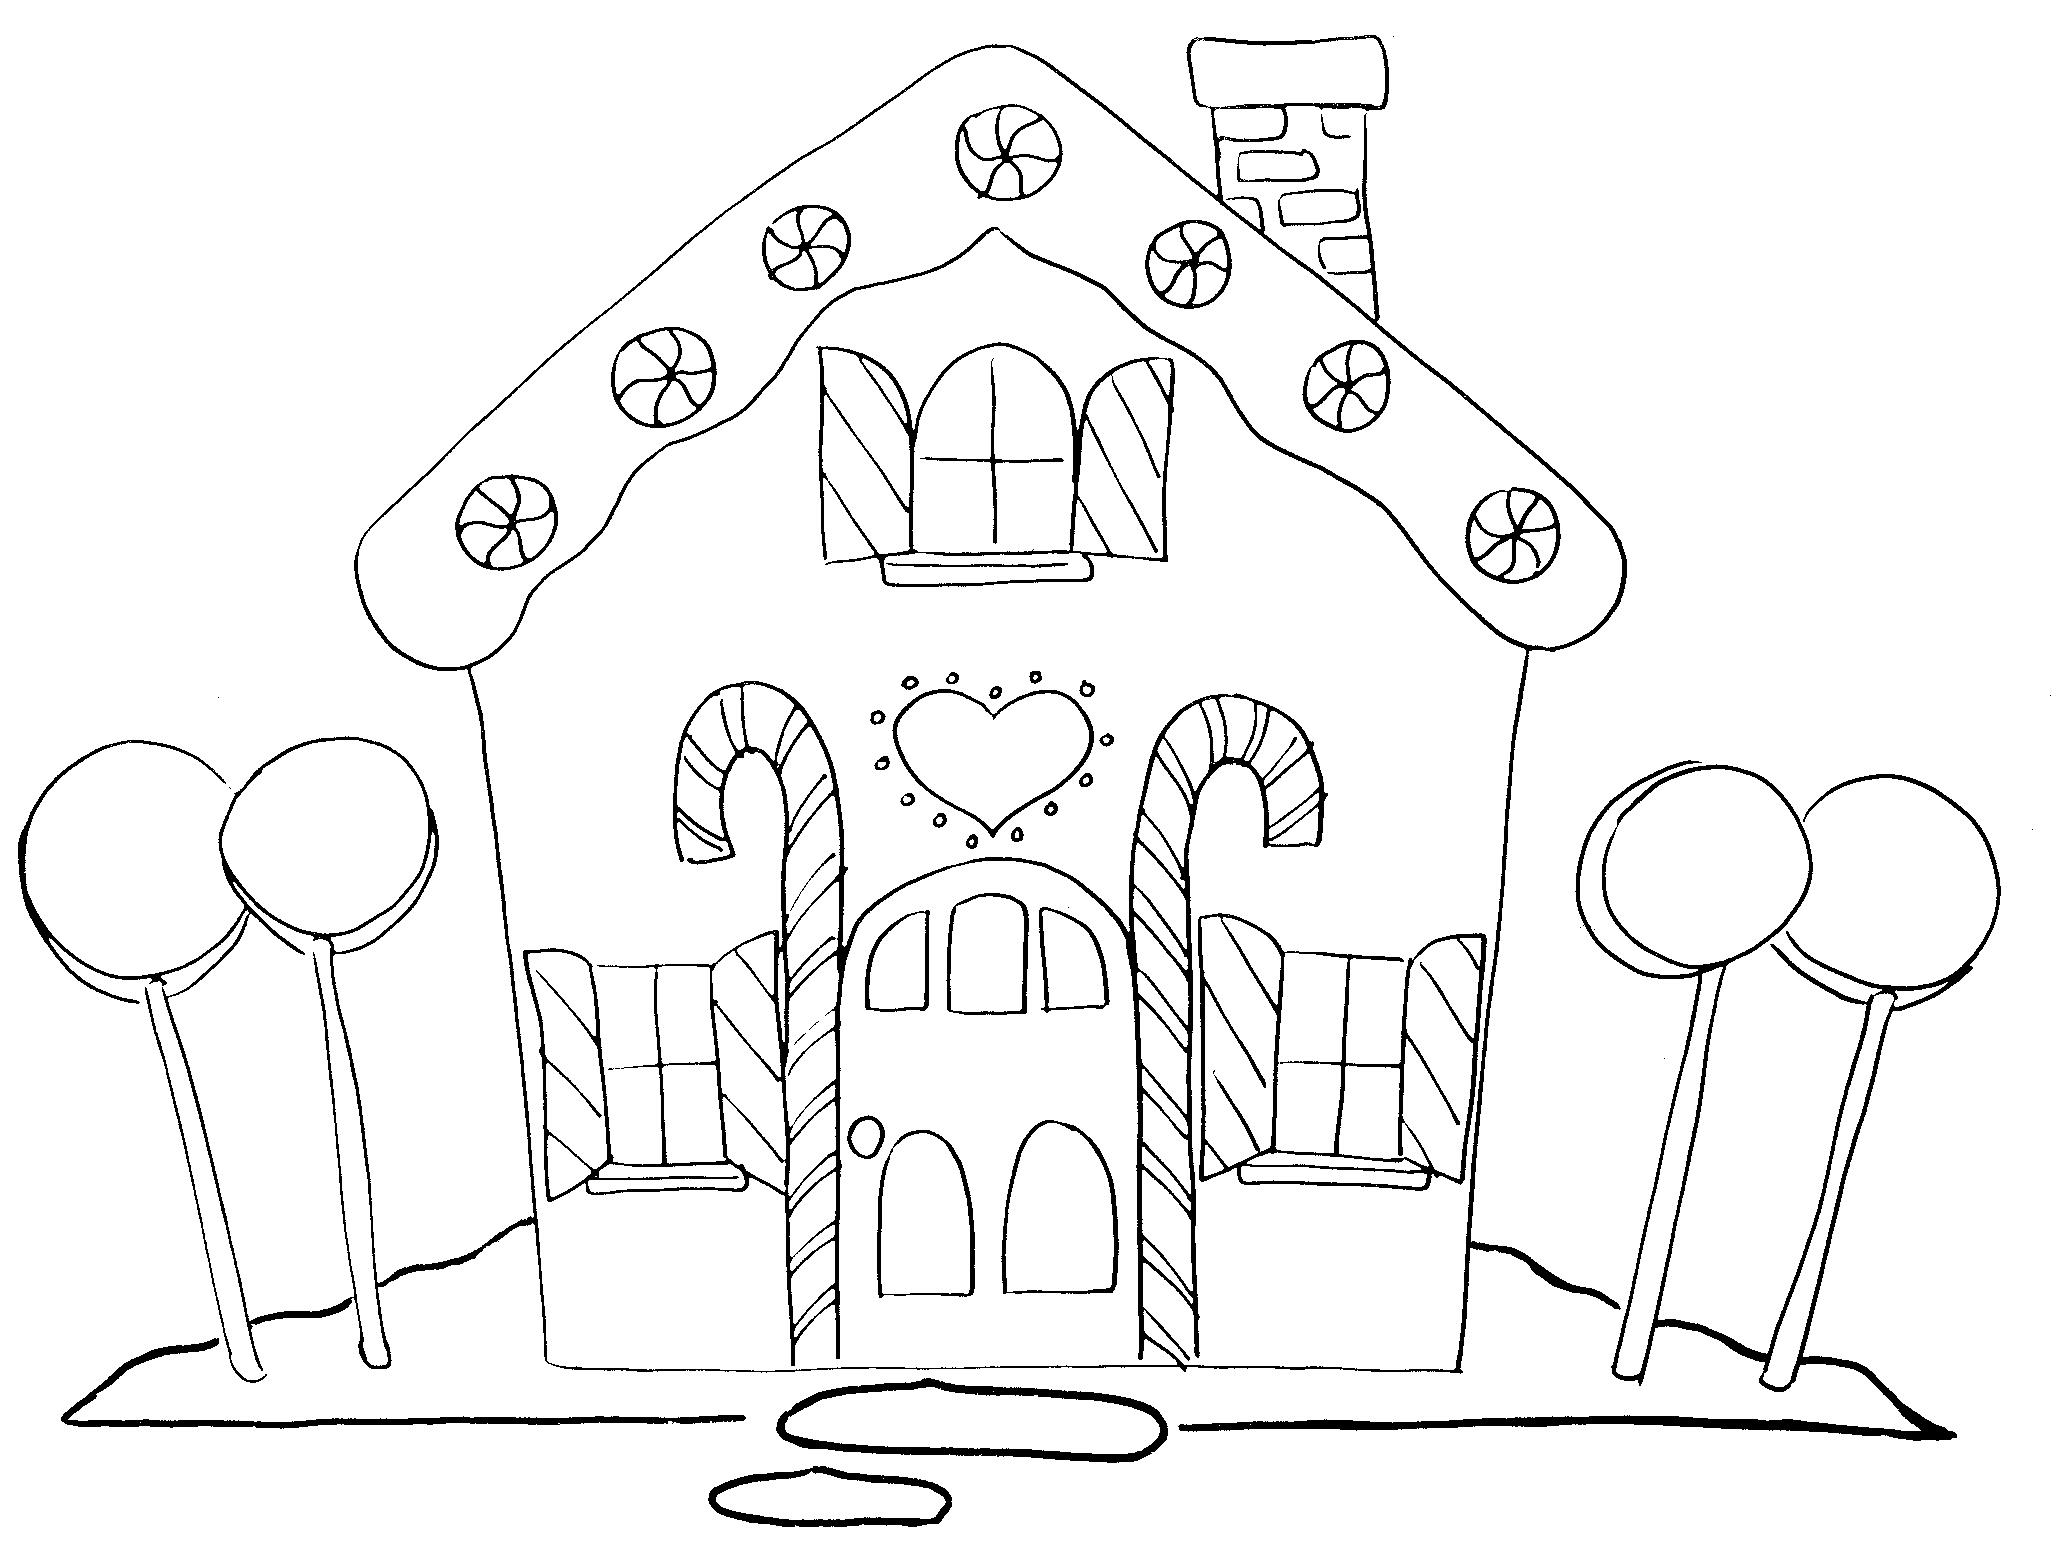 Gingerbread House Coloring New Calendar Template Site Coloring Page Gingerbread House